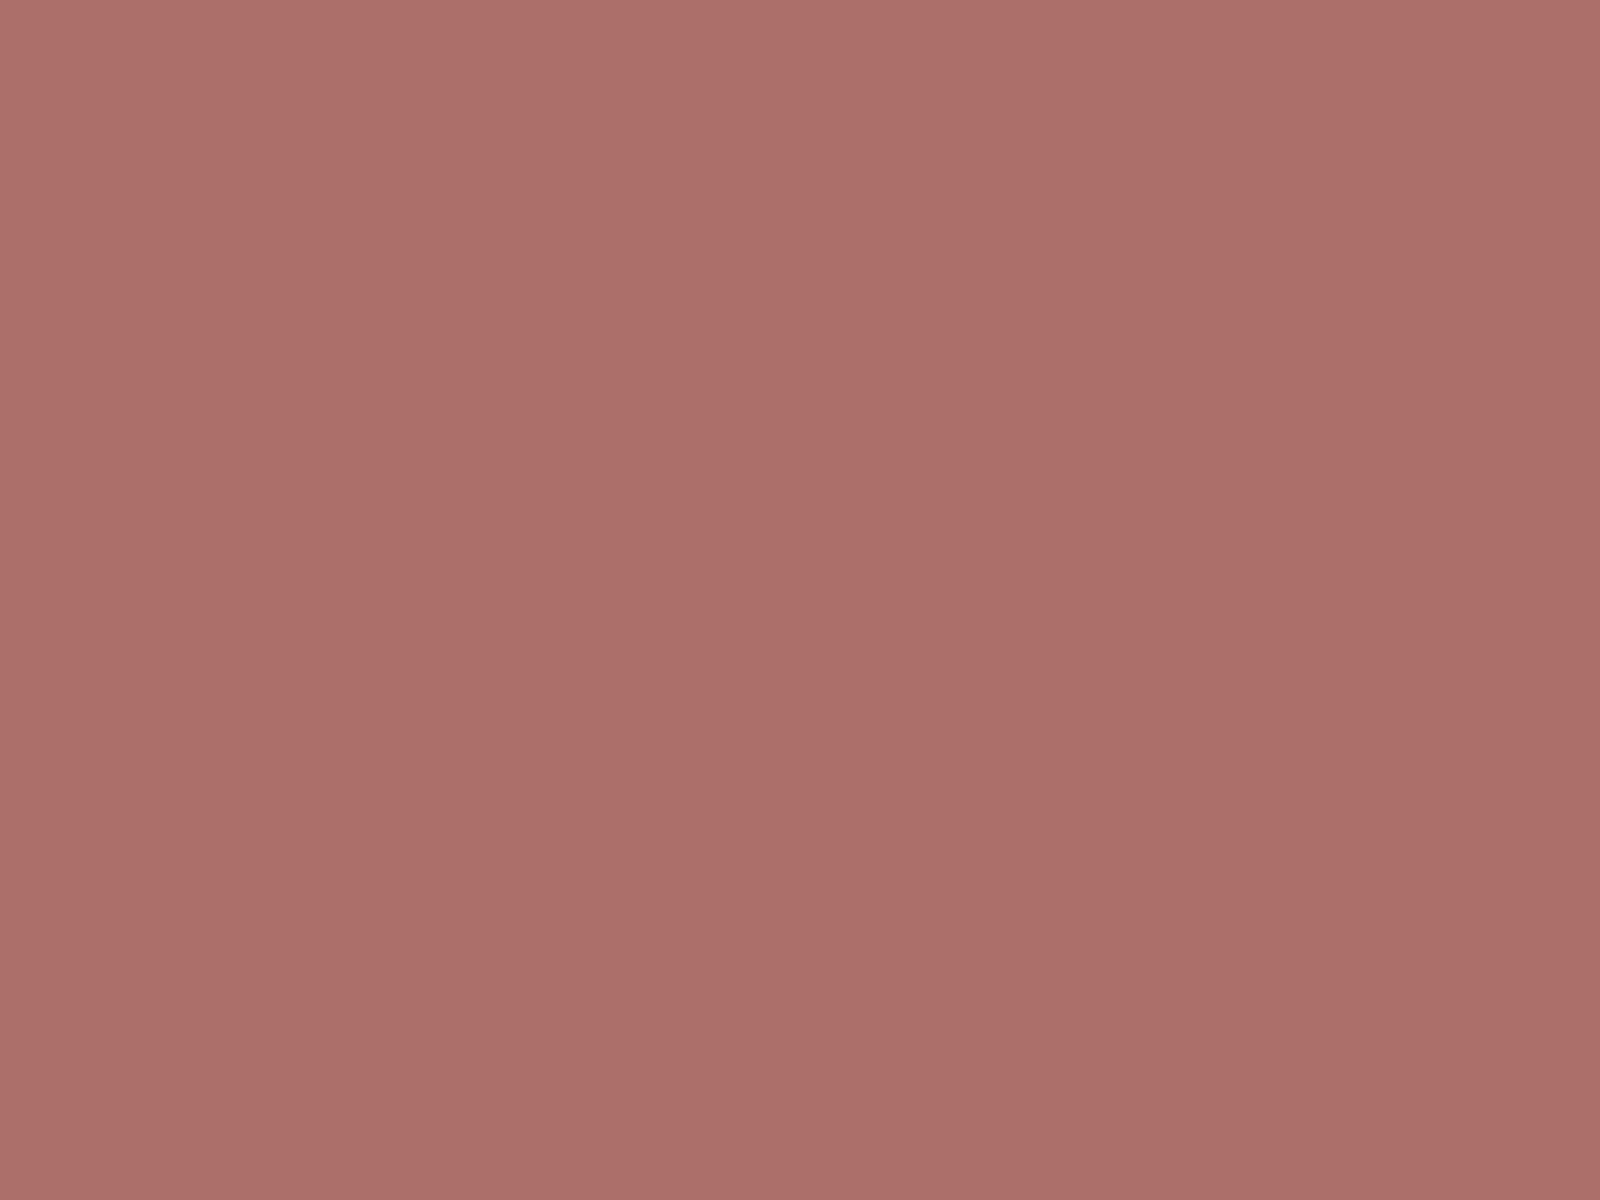 1600x1200 Copper Penny Solid Color Background